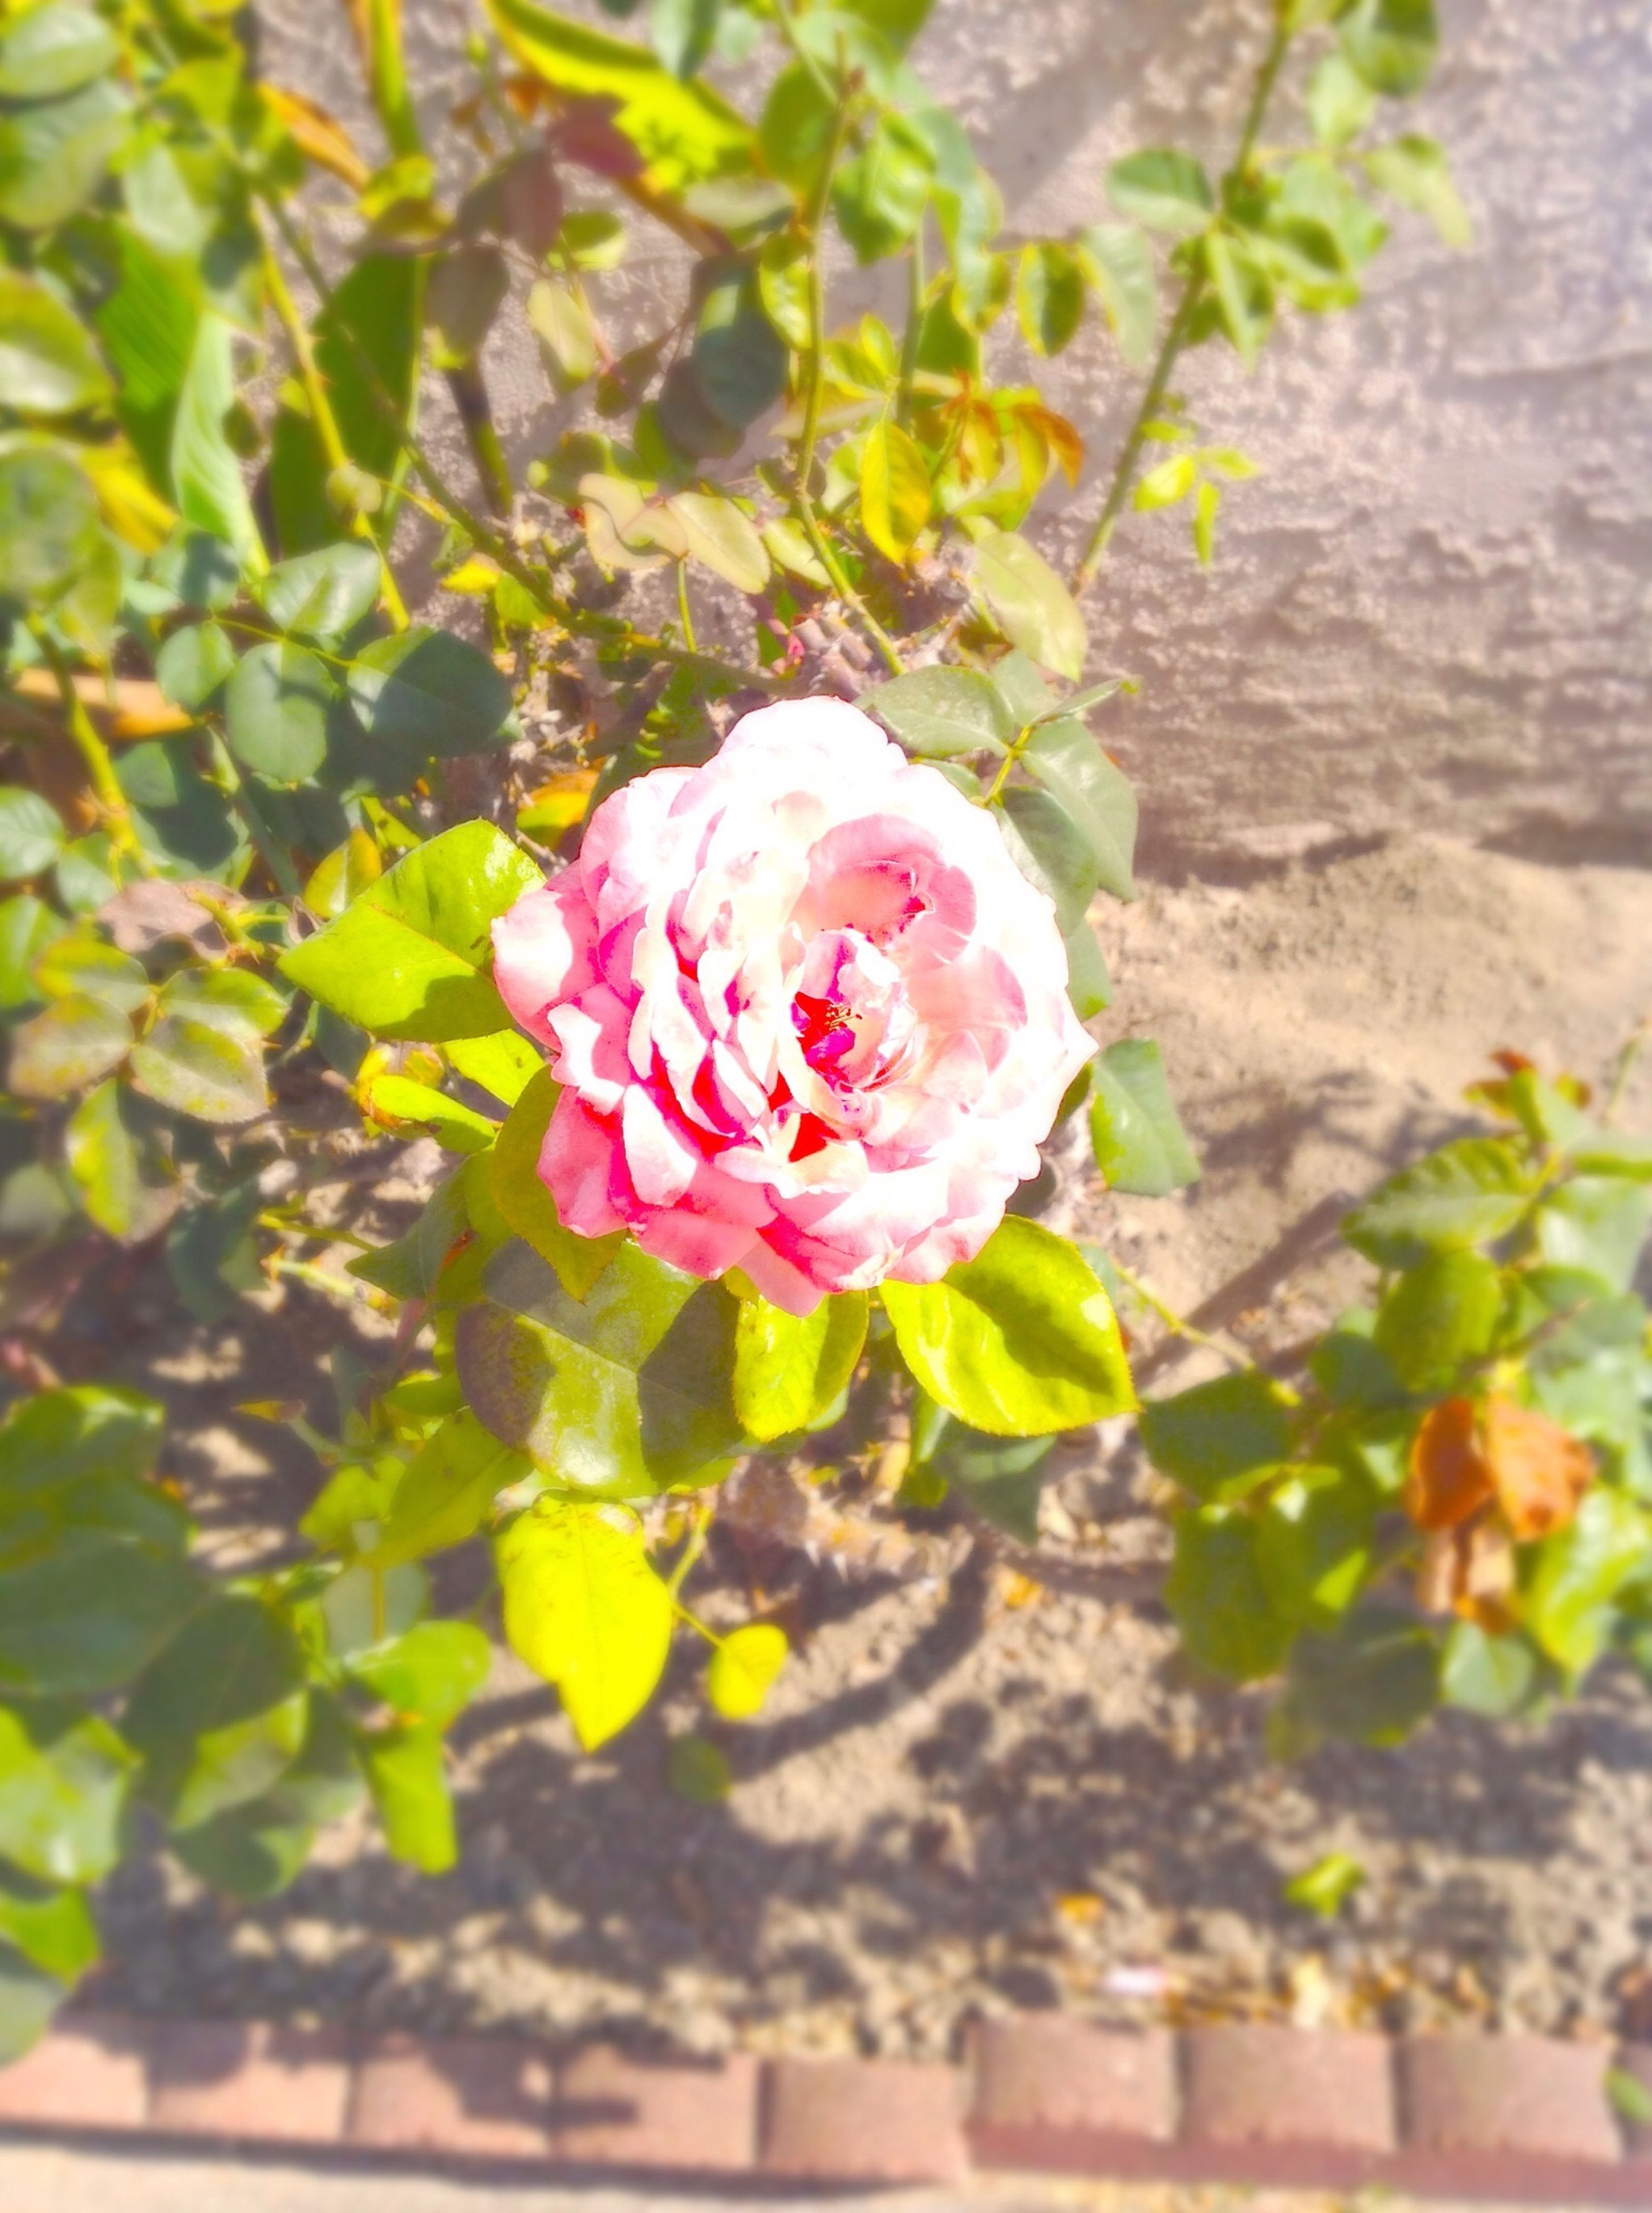 flower, freshness, petal, fragility, flower head, growth, focus on foreground, rose - flower, beauty in nature, close-up, blooming, pink color, nature, plant, leaf, in bloom, day, single flower, outdoors, springtime